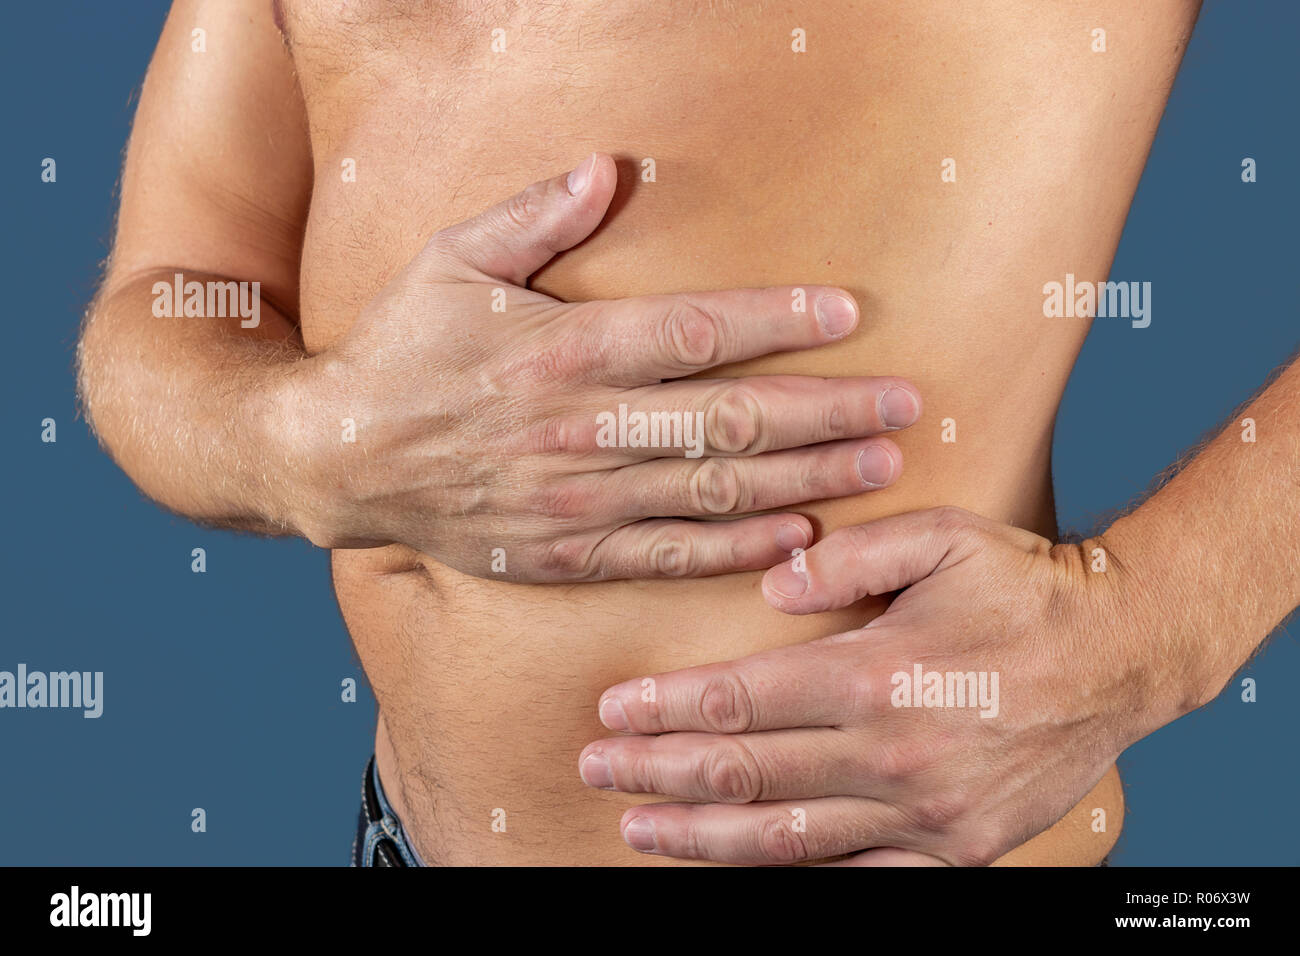 Man suffering from pain in his side. Blue background - Stock Image